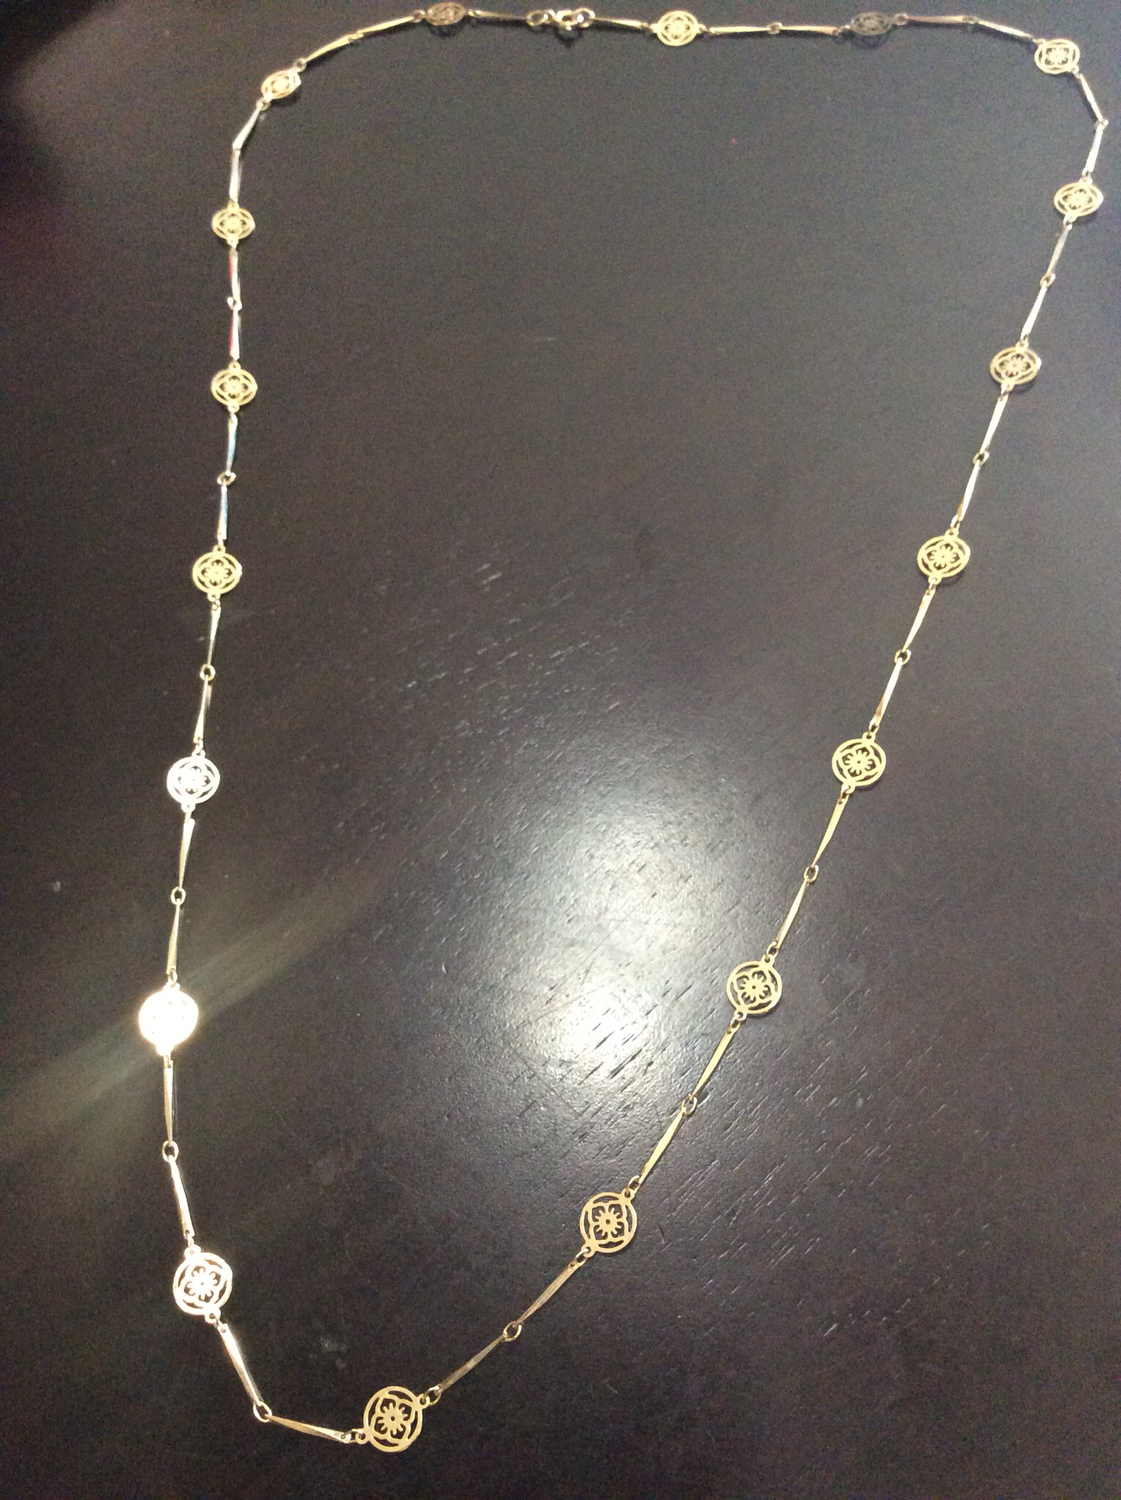 Necklace multiple portals to powerful points on the Saint Michael Ley Line / Alignment